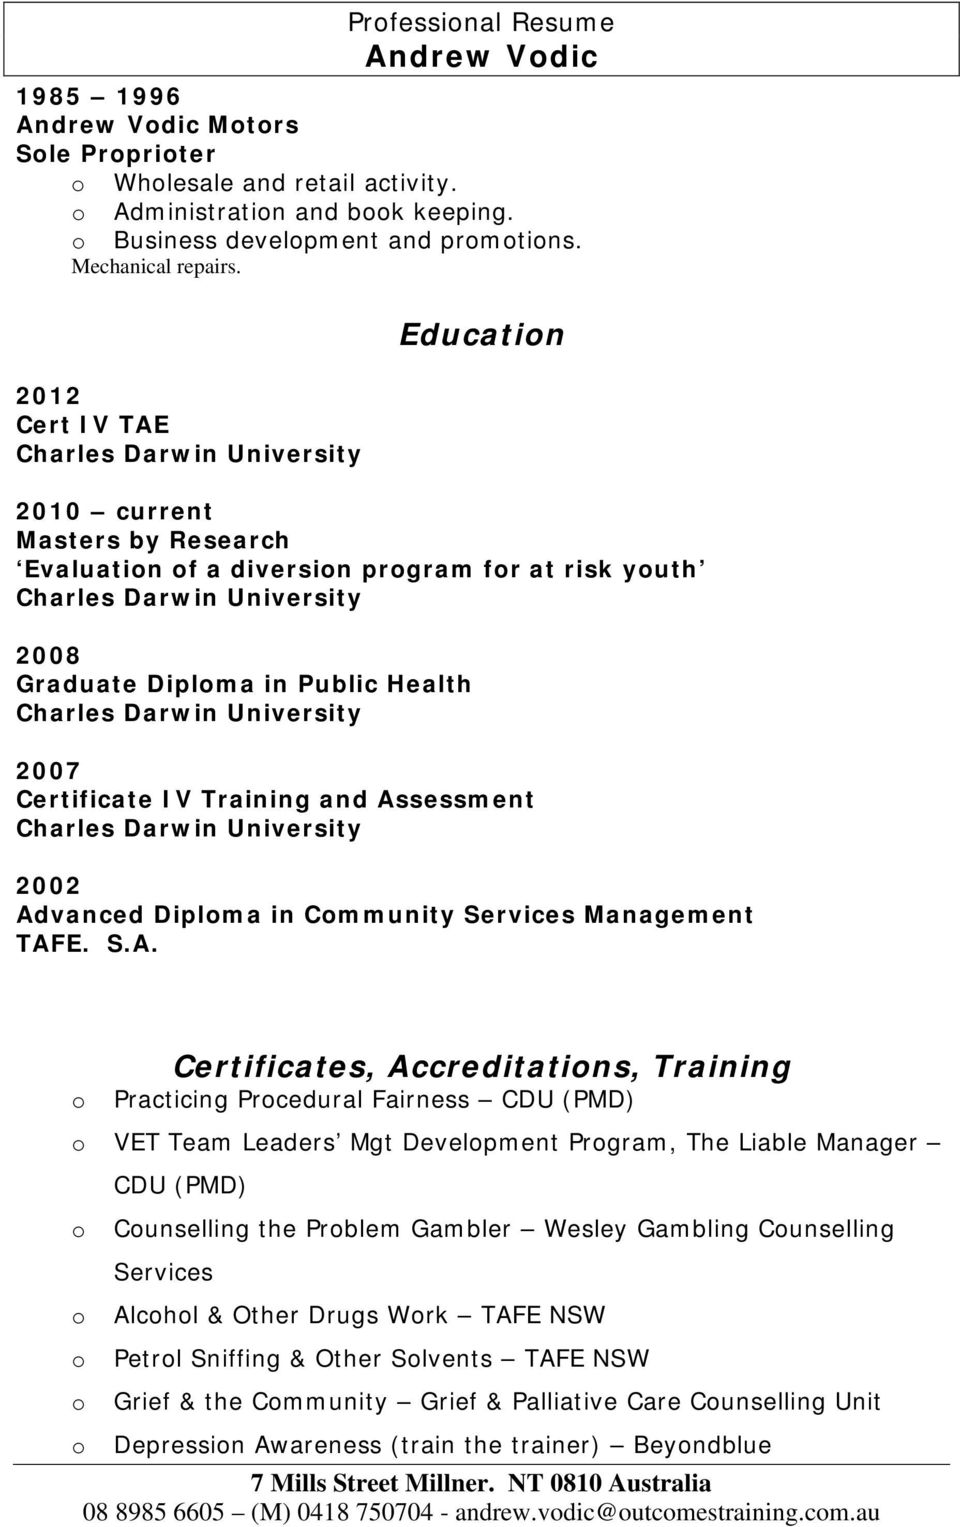 Advanced Diplma in Cmmunity Services Management TAFE. S.A. Certificates, Accreditatins, Training Practicing Prcedural Fairness CDU (PMD) VET Team Leaders Mgt Develpment Prgram, The Liable Manager CDU